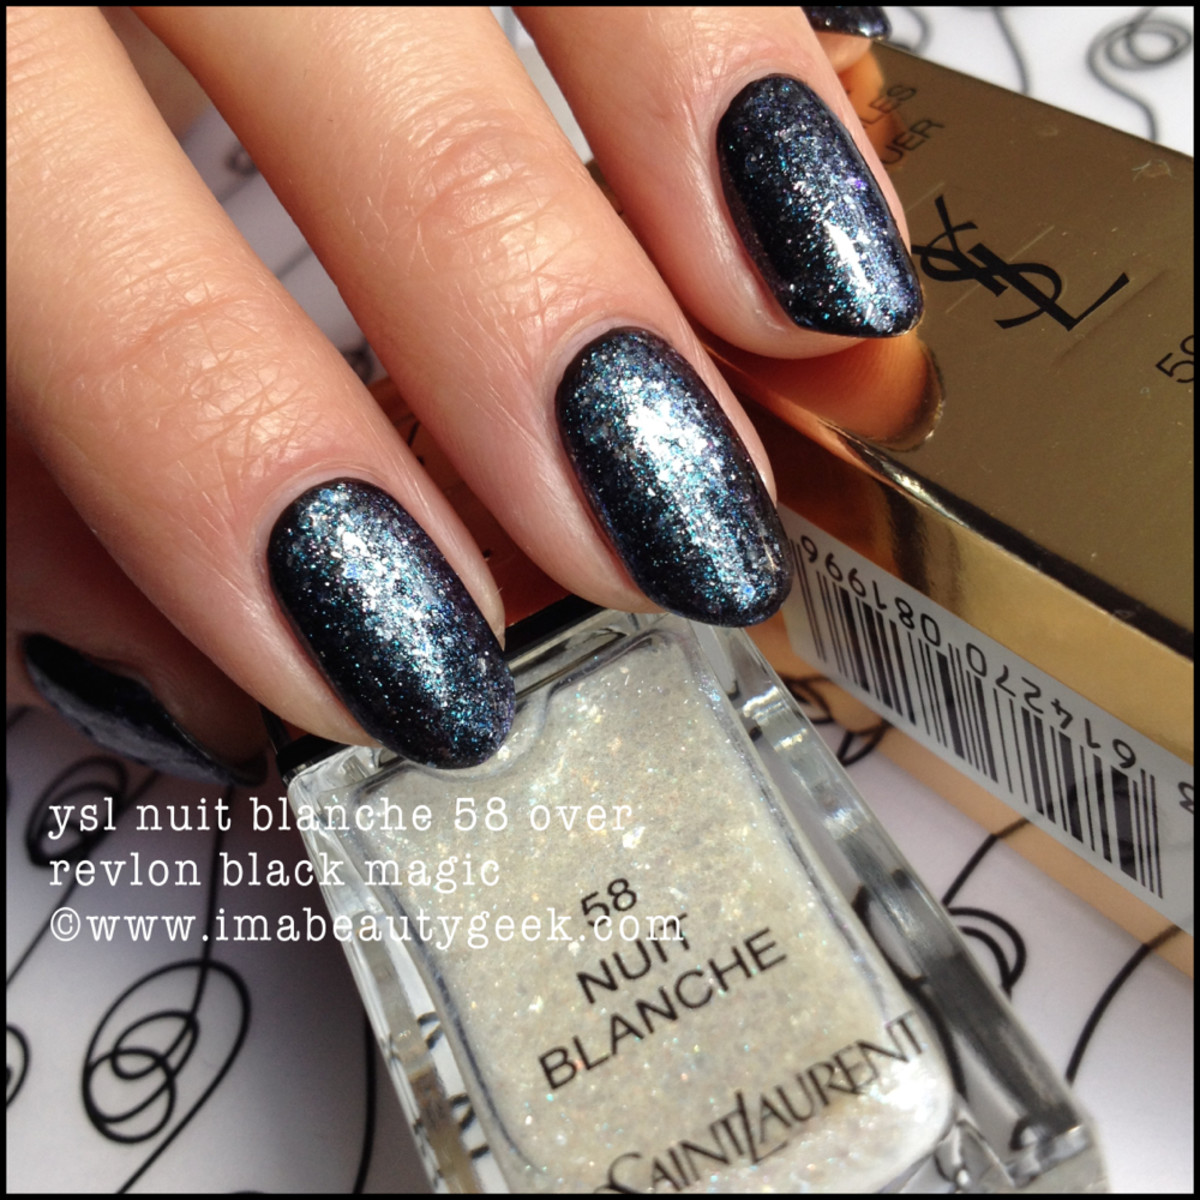 YSL Nuit Blanche 58 polish over Black